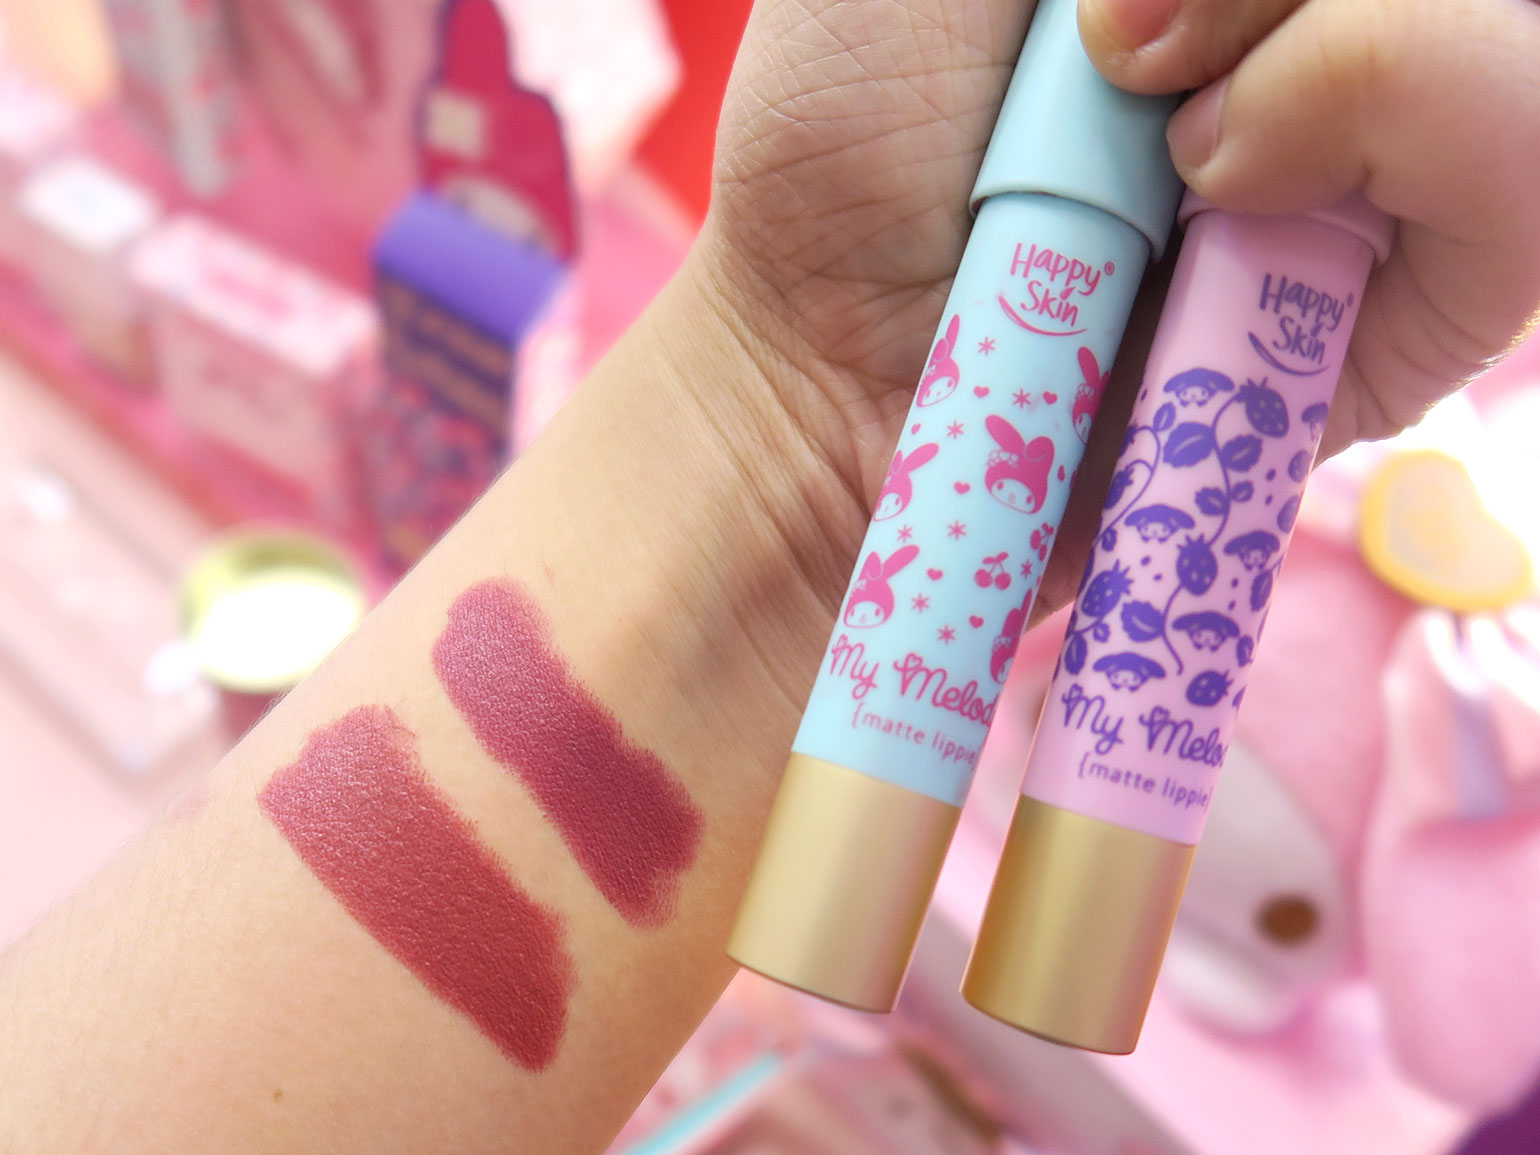 5 Happy Skin x Sanrio Characters - Grand Launch, Preview, Swatches - Gen-zel - She Sings Beauty